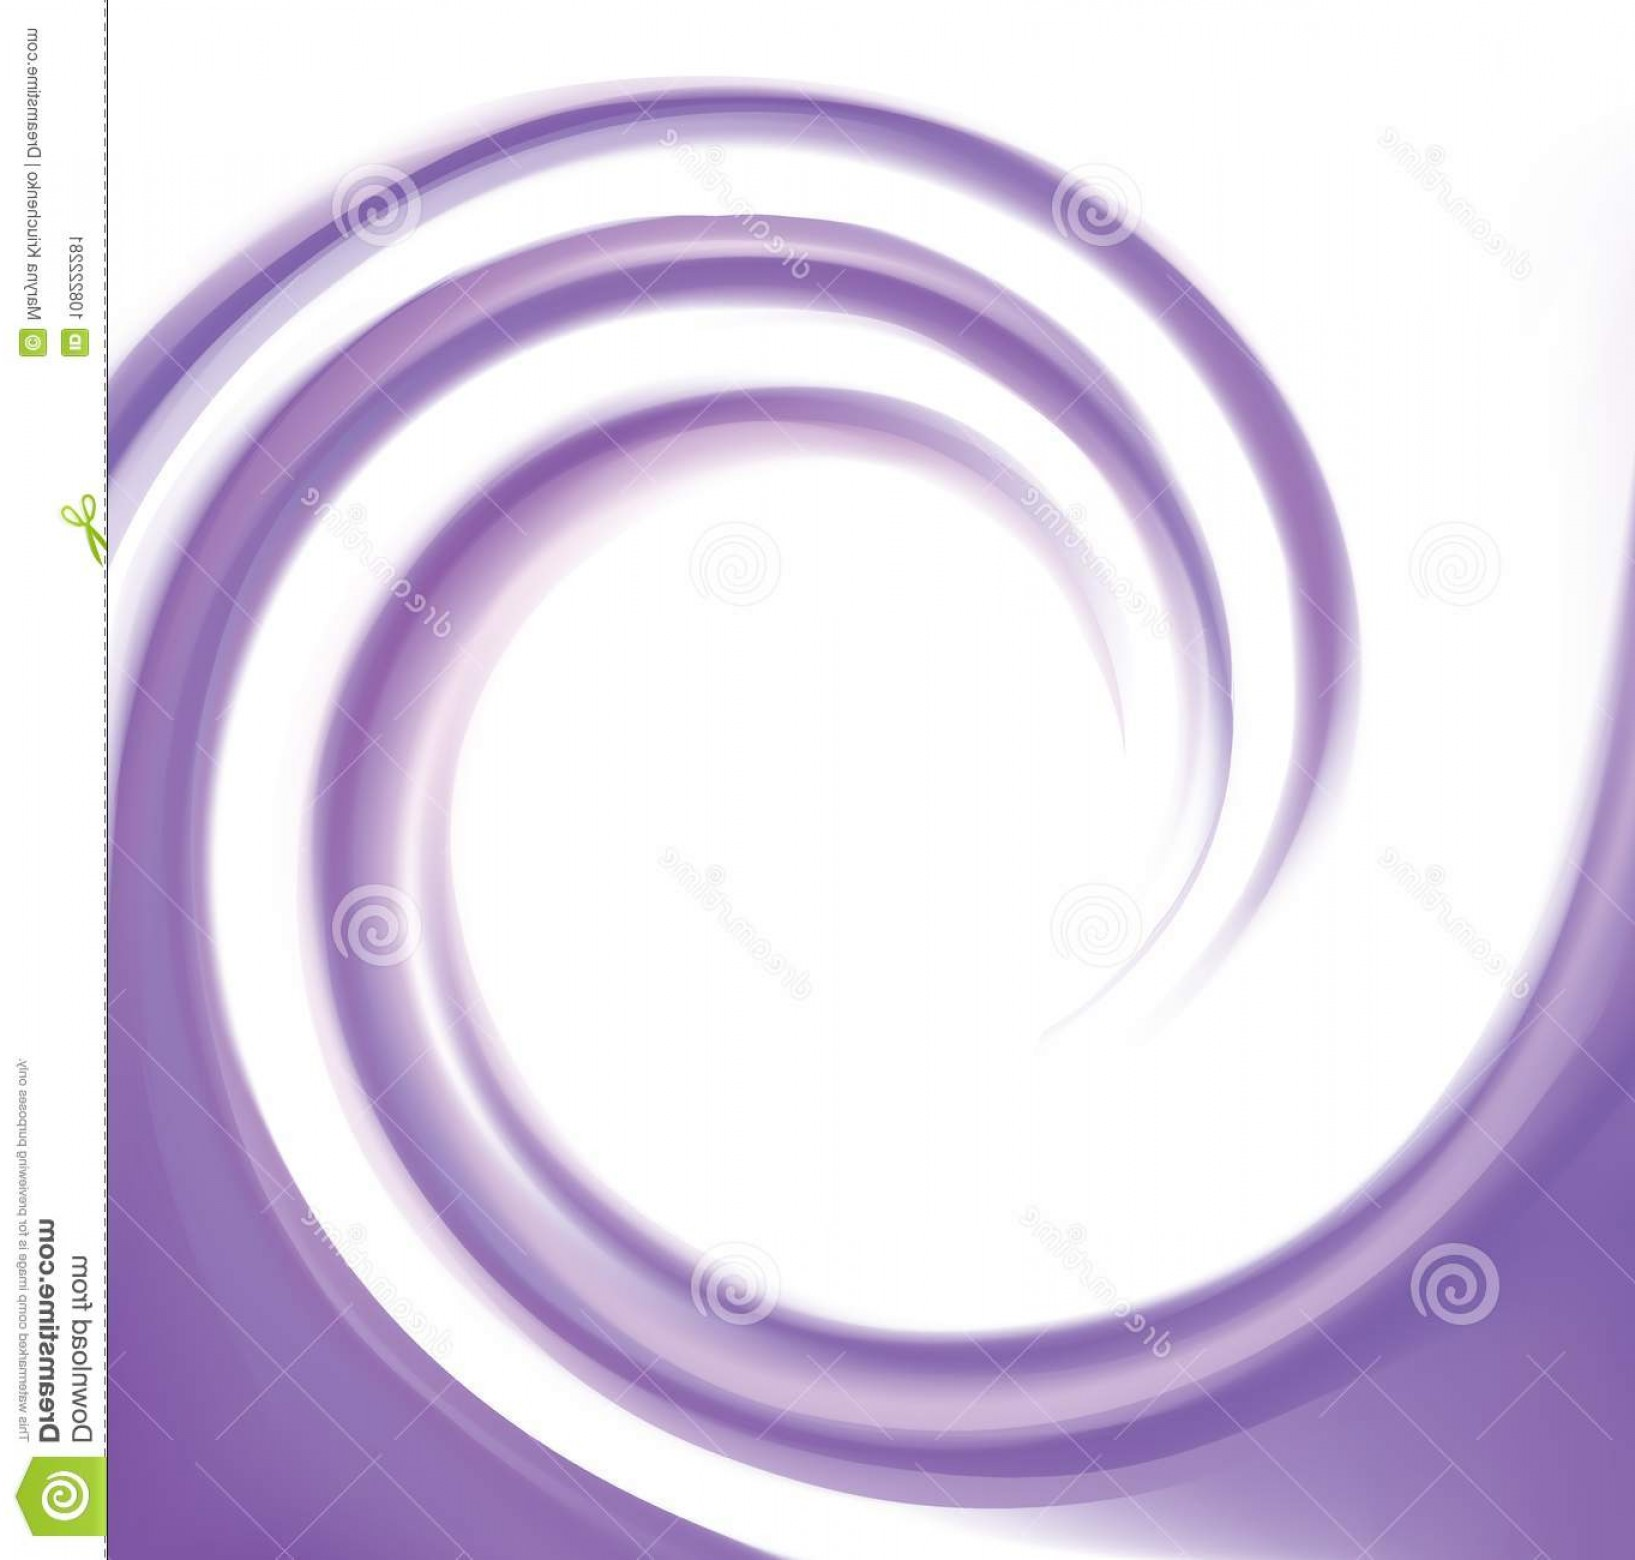 Violet Swirl Design Vector: Vector Abstract Violet Swirl Background Glossy Radial Rippled Curvy Fond Space Text White Border Gel Fluid Indigo Image